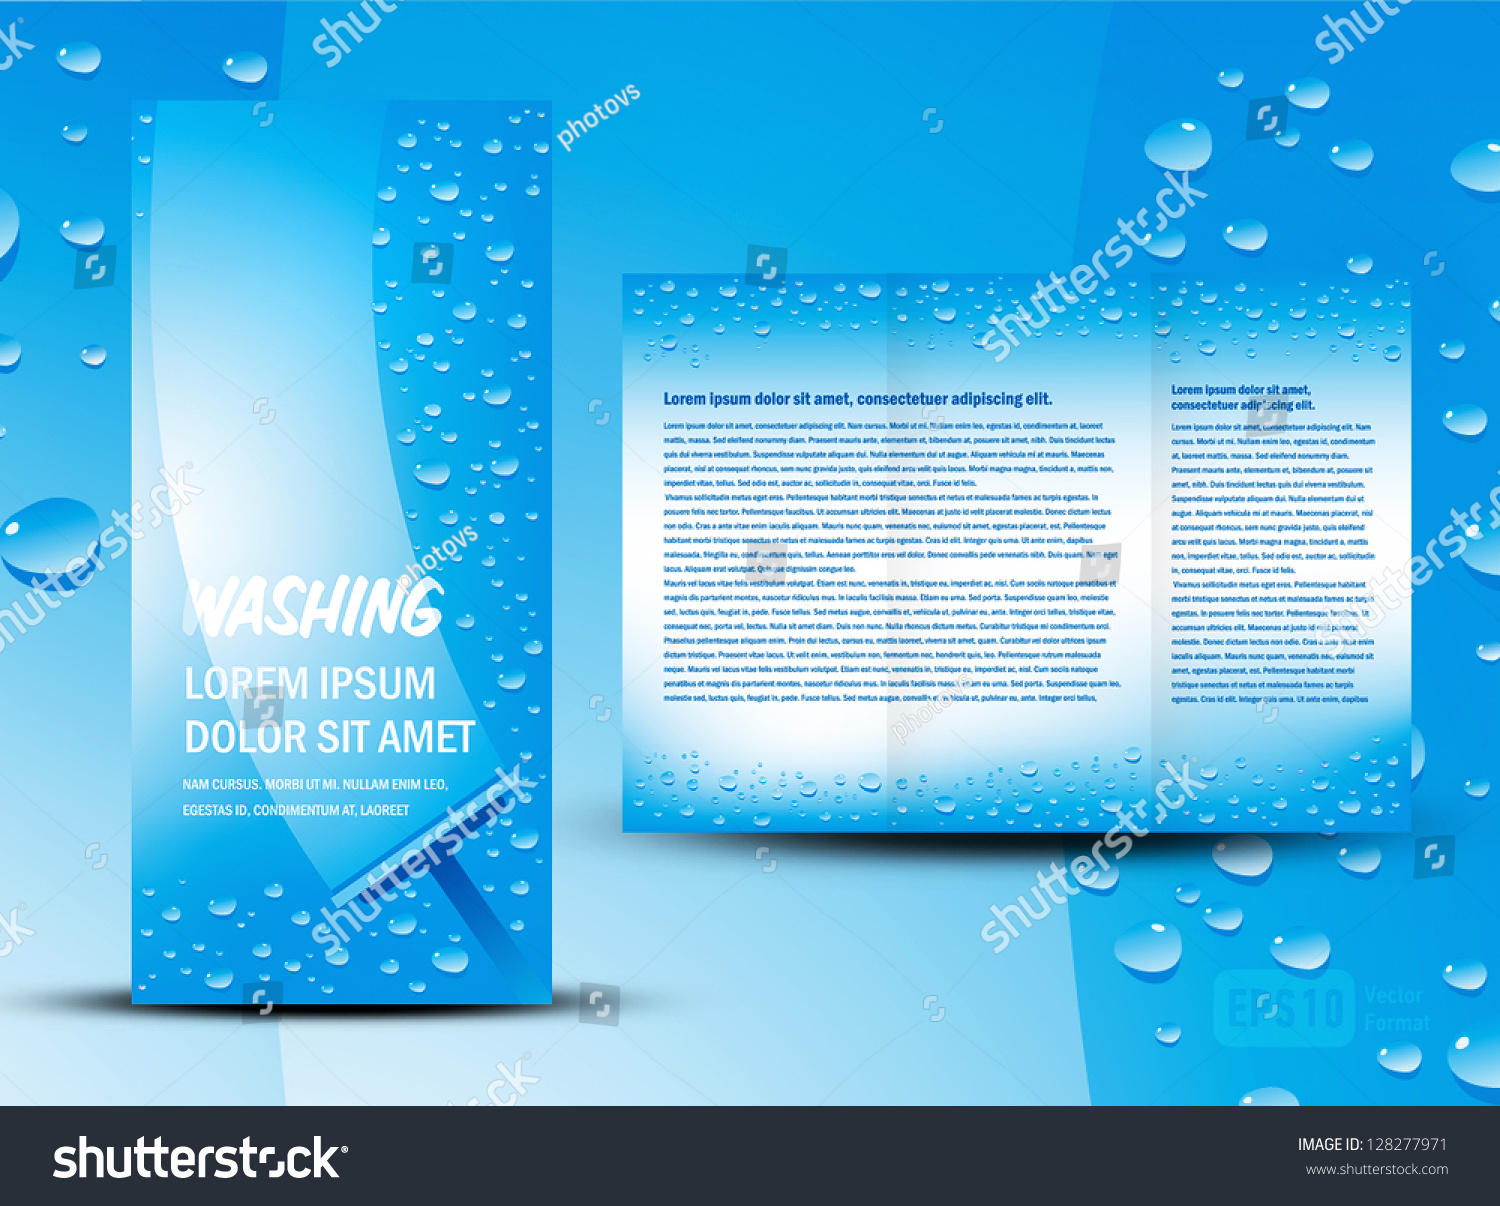 brochure folder washing cleaning design cmyk stock vector brochure folder washing cleaning design cmyk no transparent